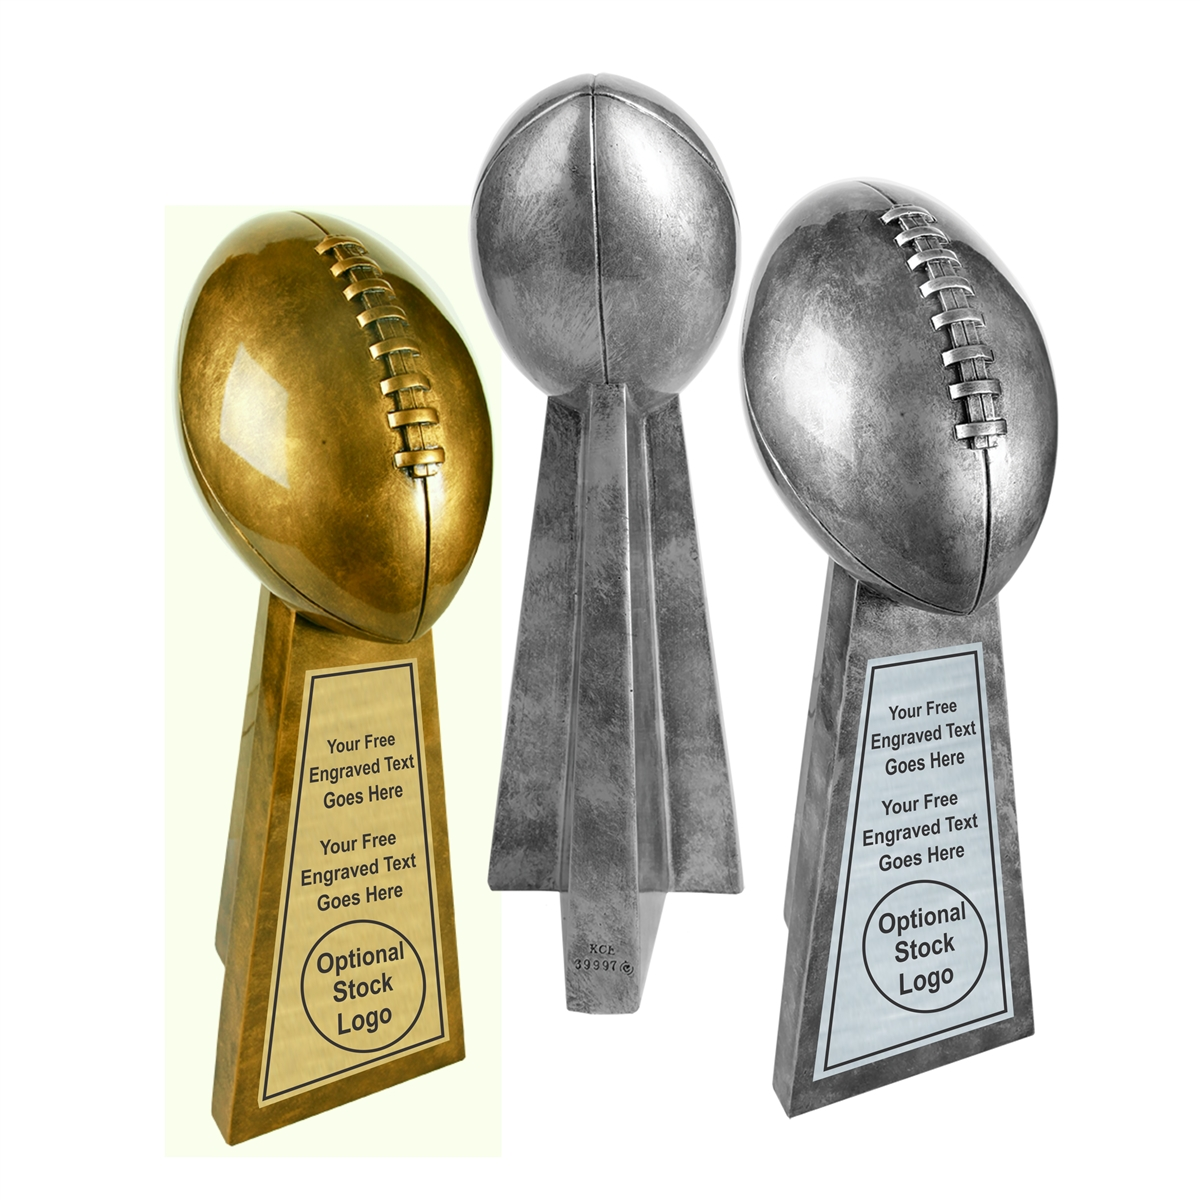 TENNIS TROPHY ENGRAVED FREE  AWARD PRIZE BALL SHAPE DESIG QUALITY RESIN TROPHIES